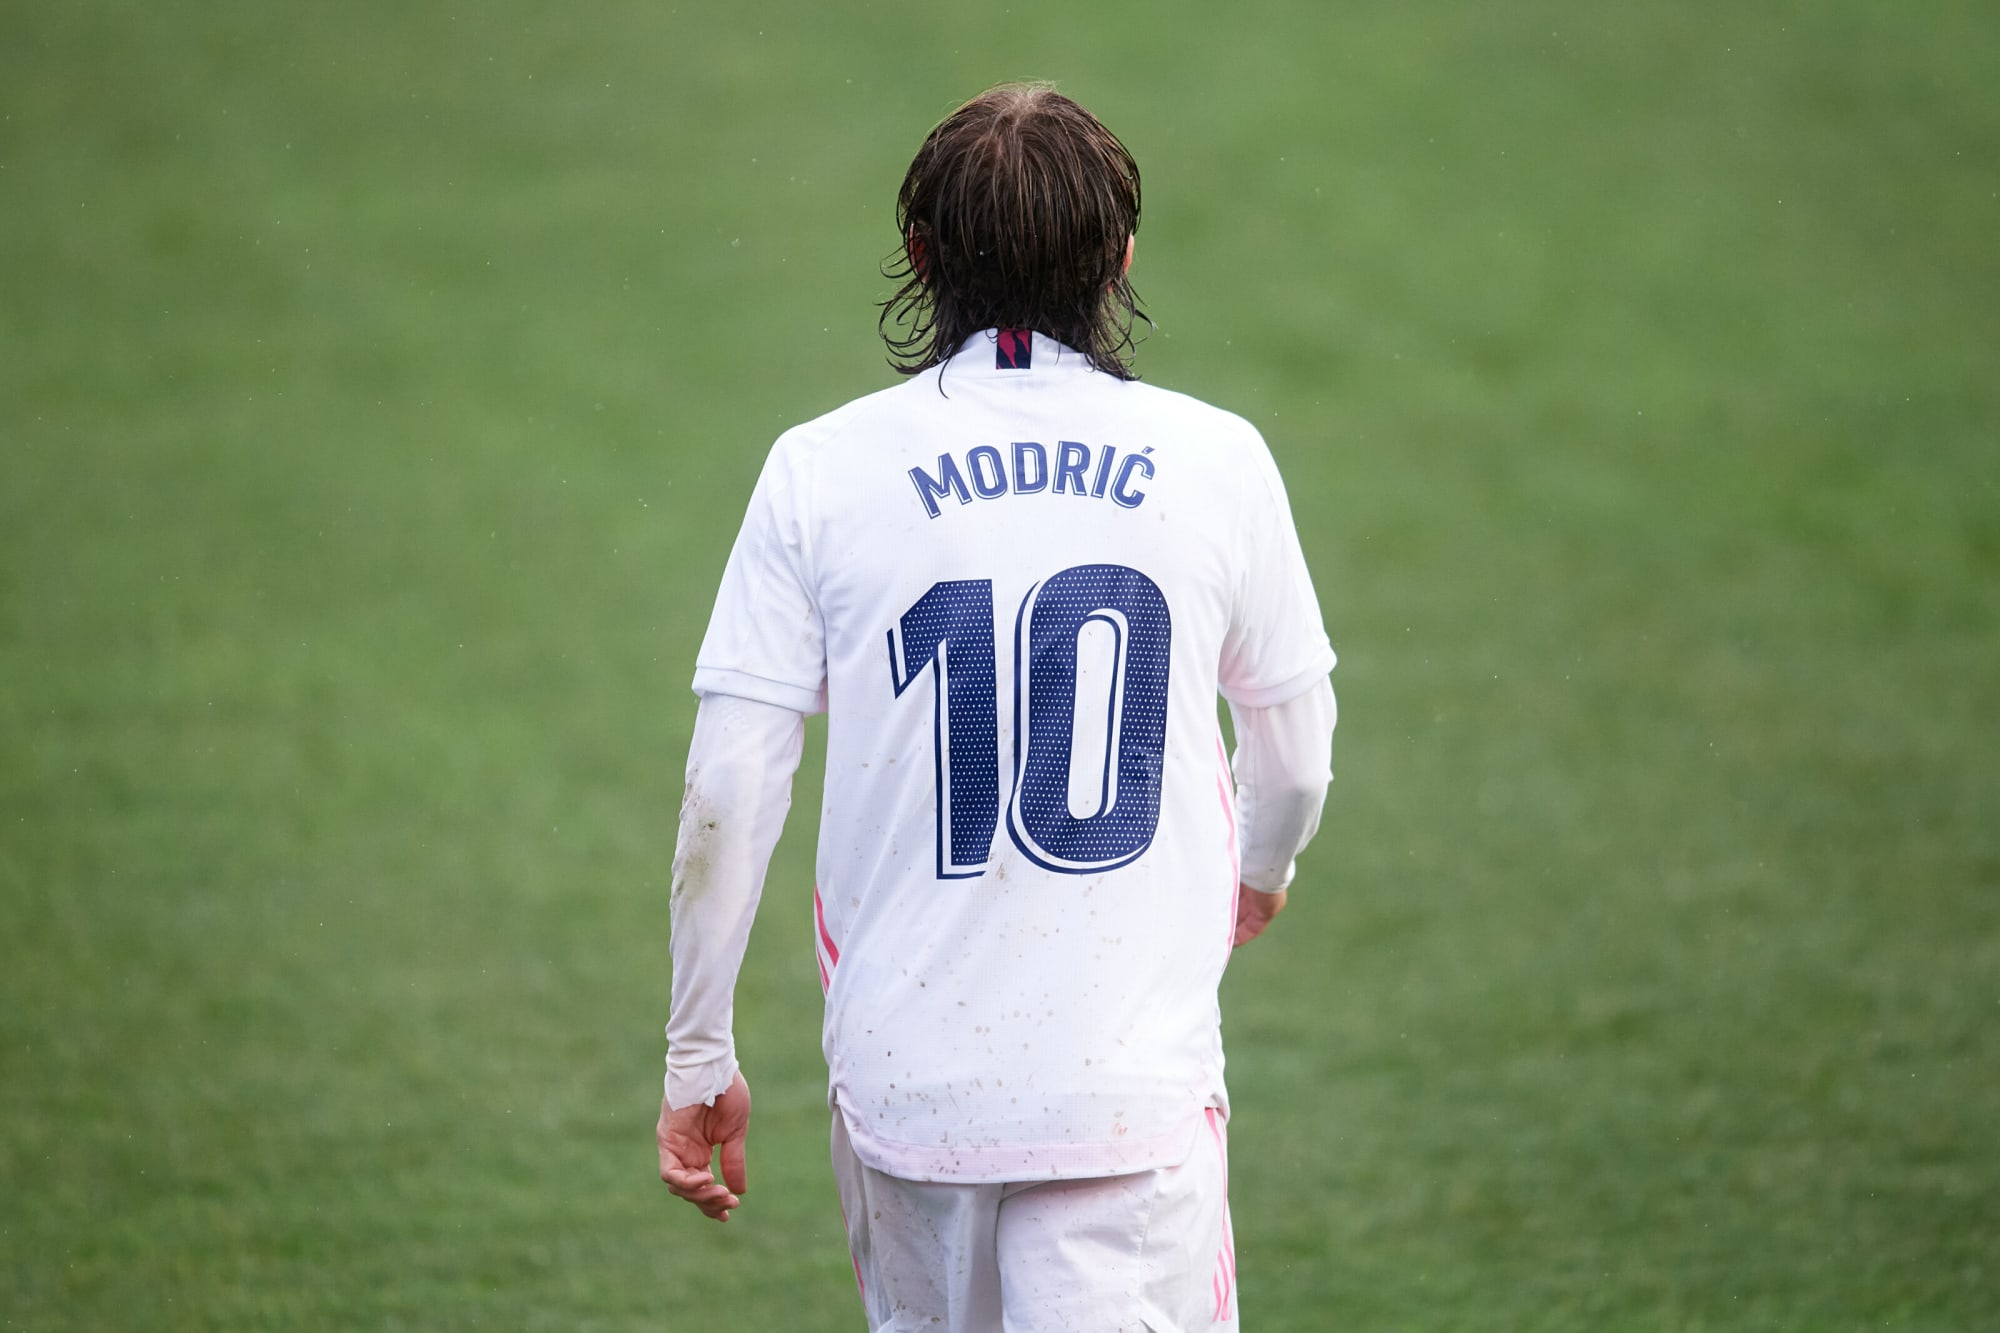 Real Madrid: What should the starting XI look like in 2021/22?